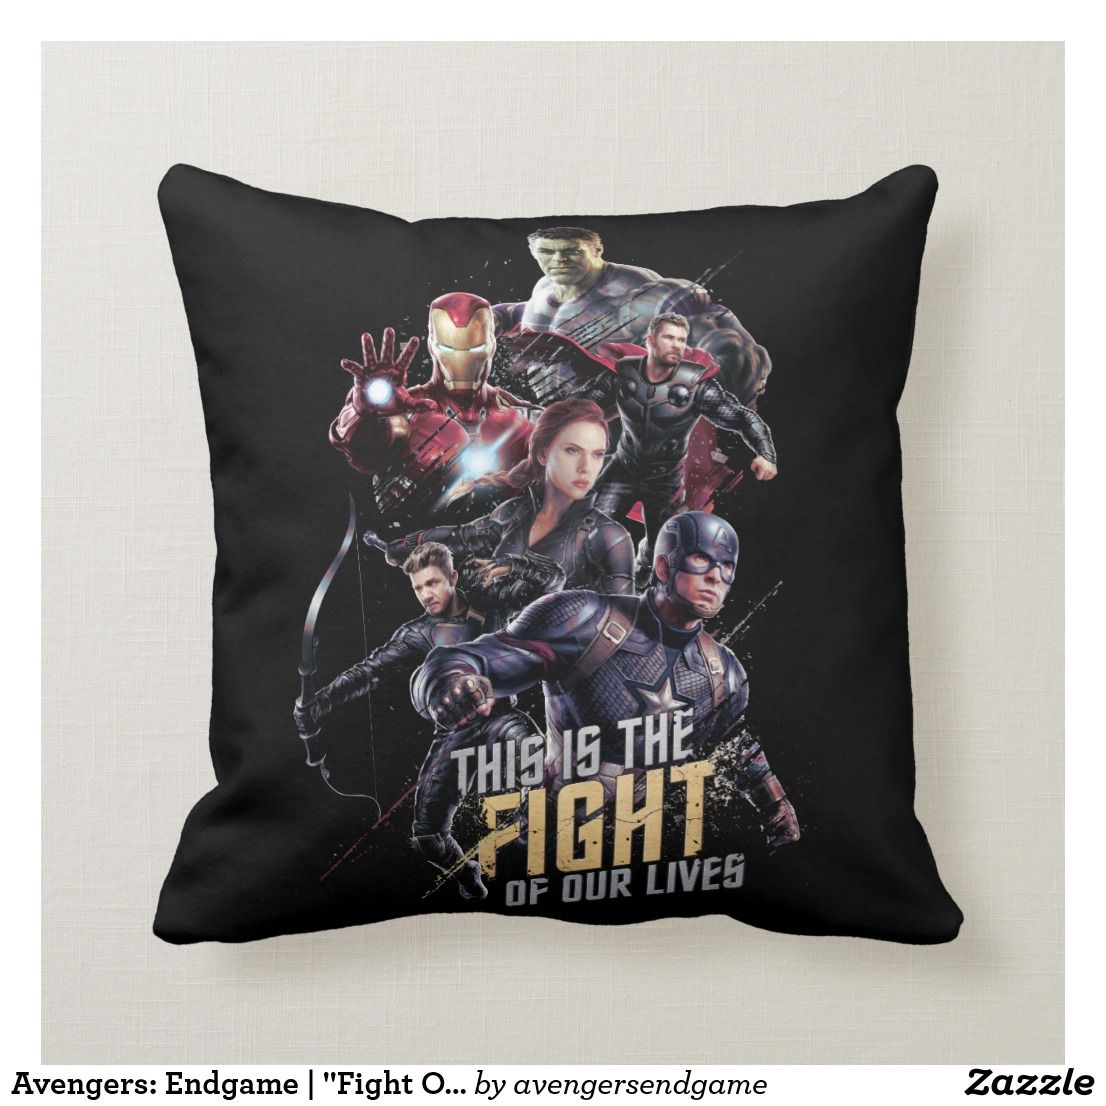 Avengers Endgame Fight Of Our Lives Avengers Throw Pillow Pillows Throw Pillows Avengers